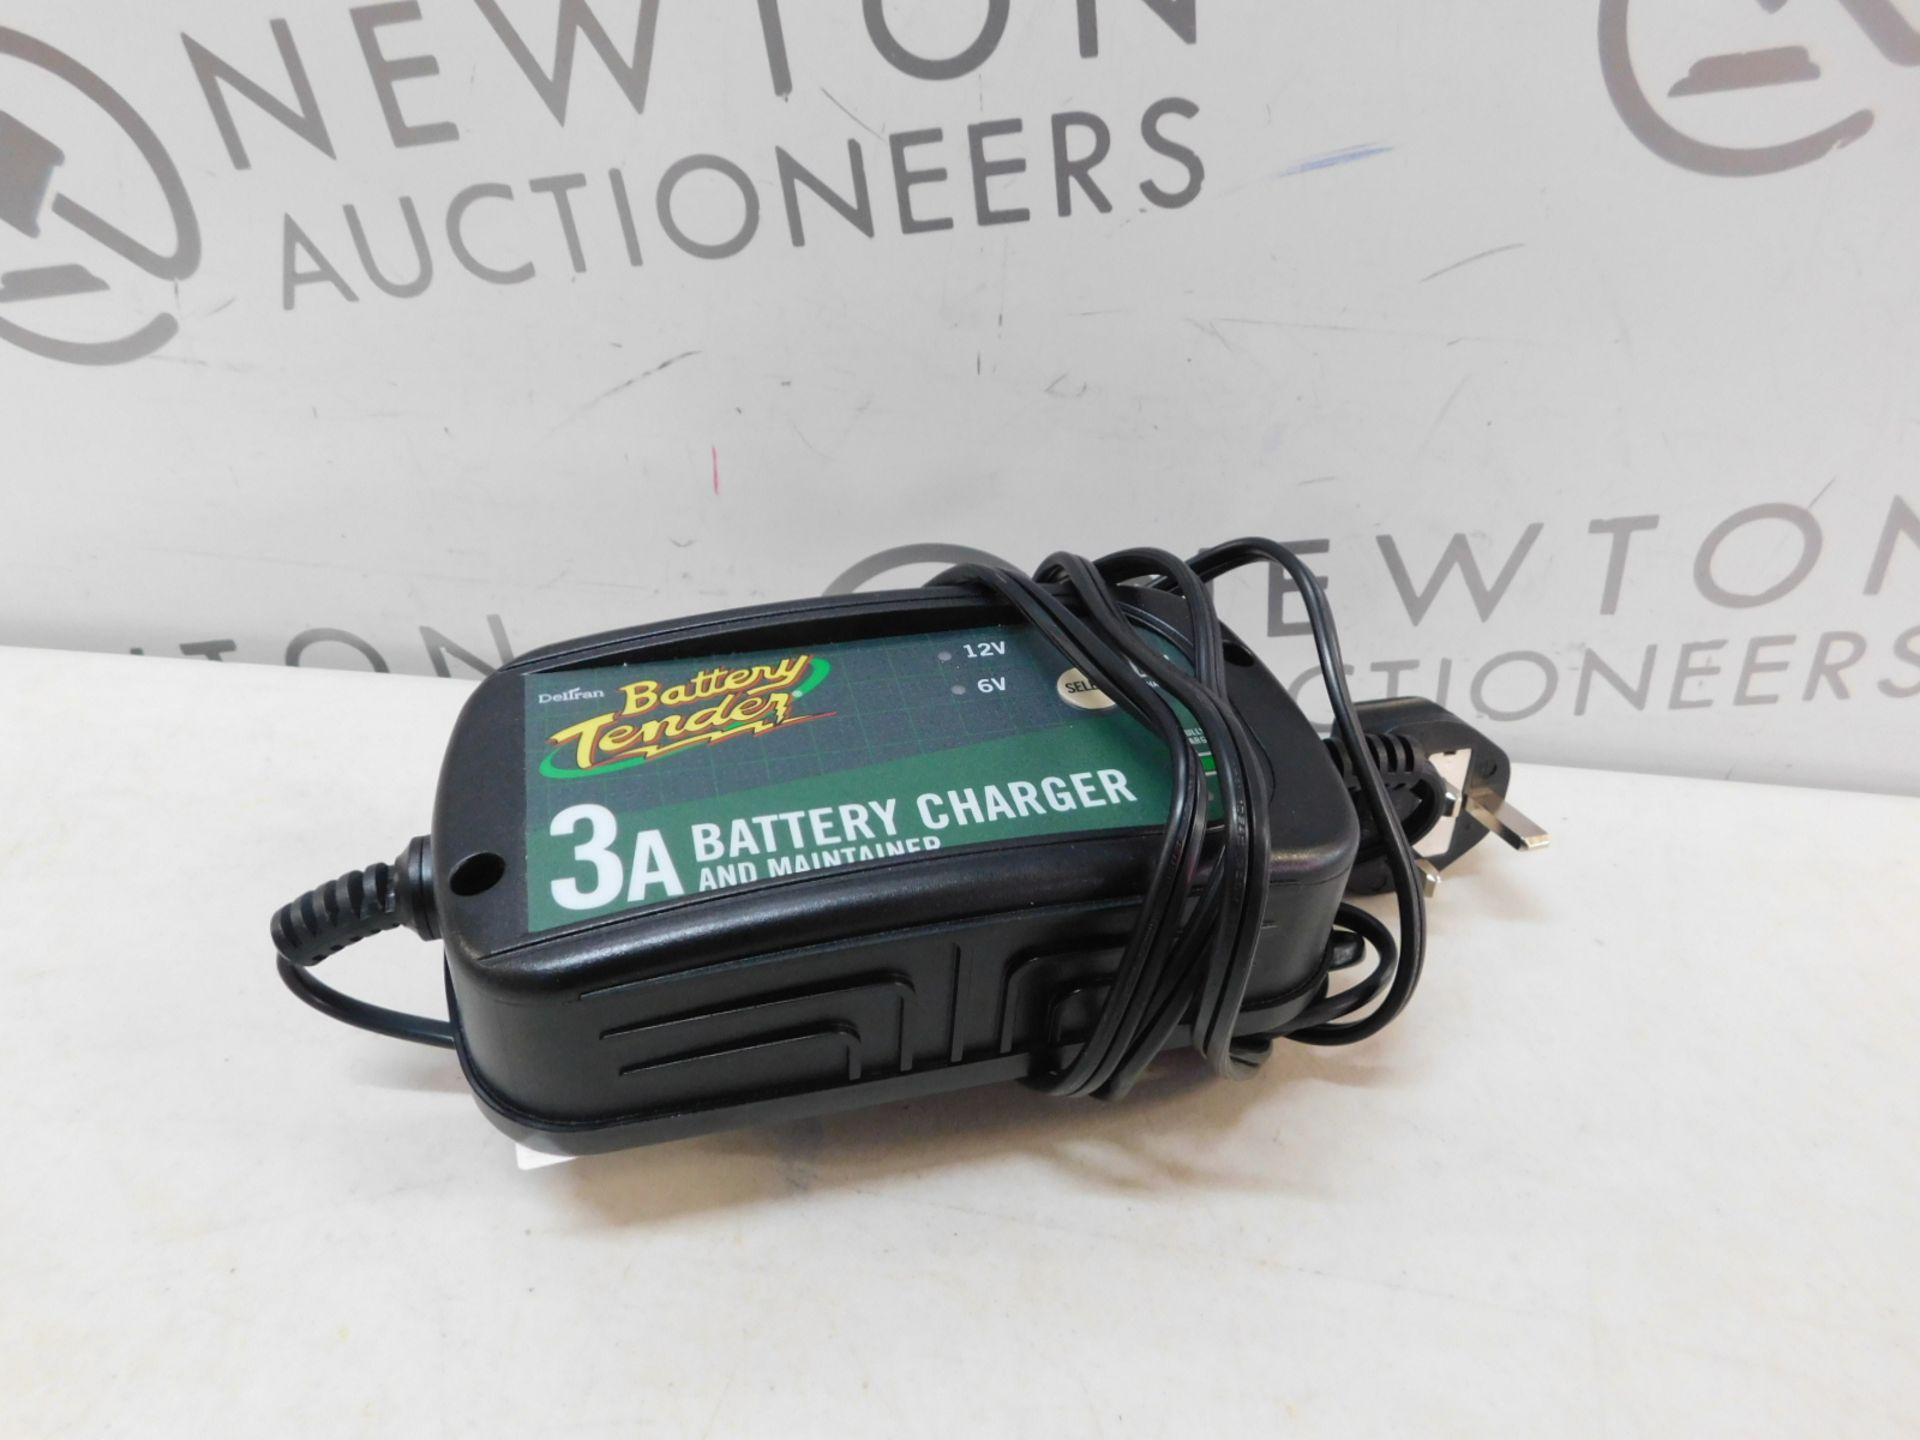 Lot 382 - 1 BATTERY TENDER 6V/ 12V BATTERY CHARGER AND MAINTAINER RRP £49.99